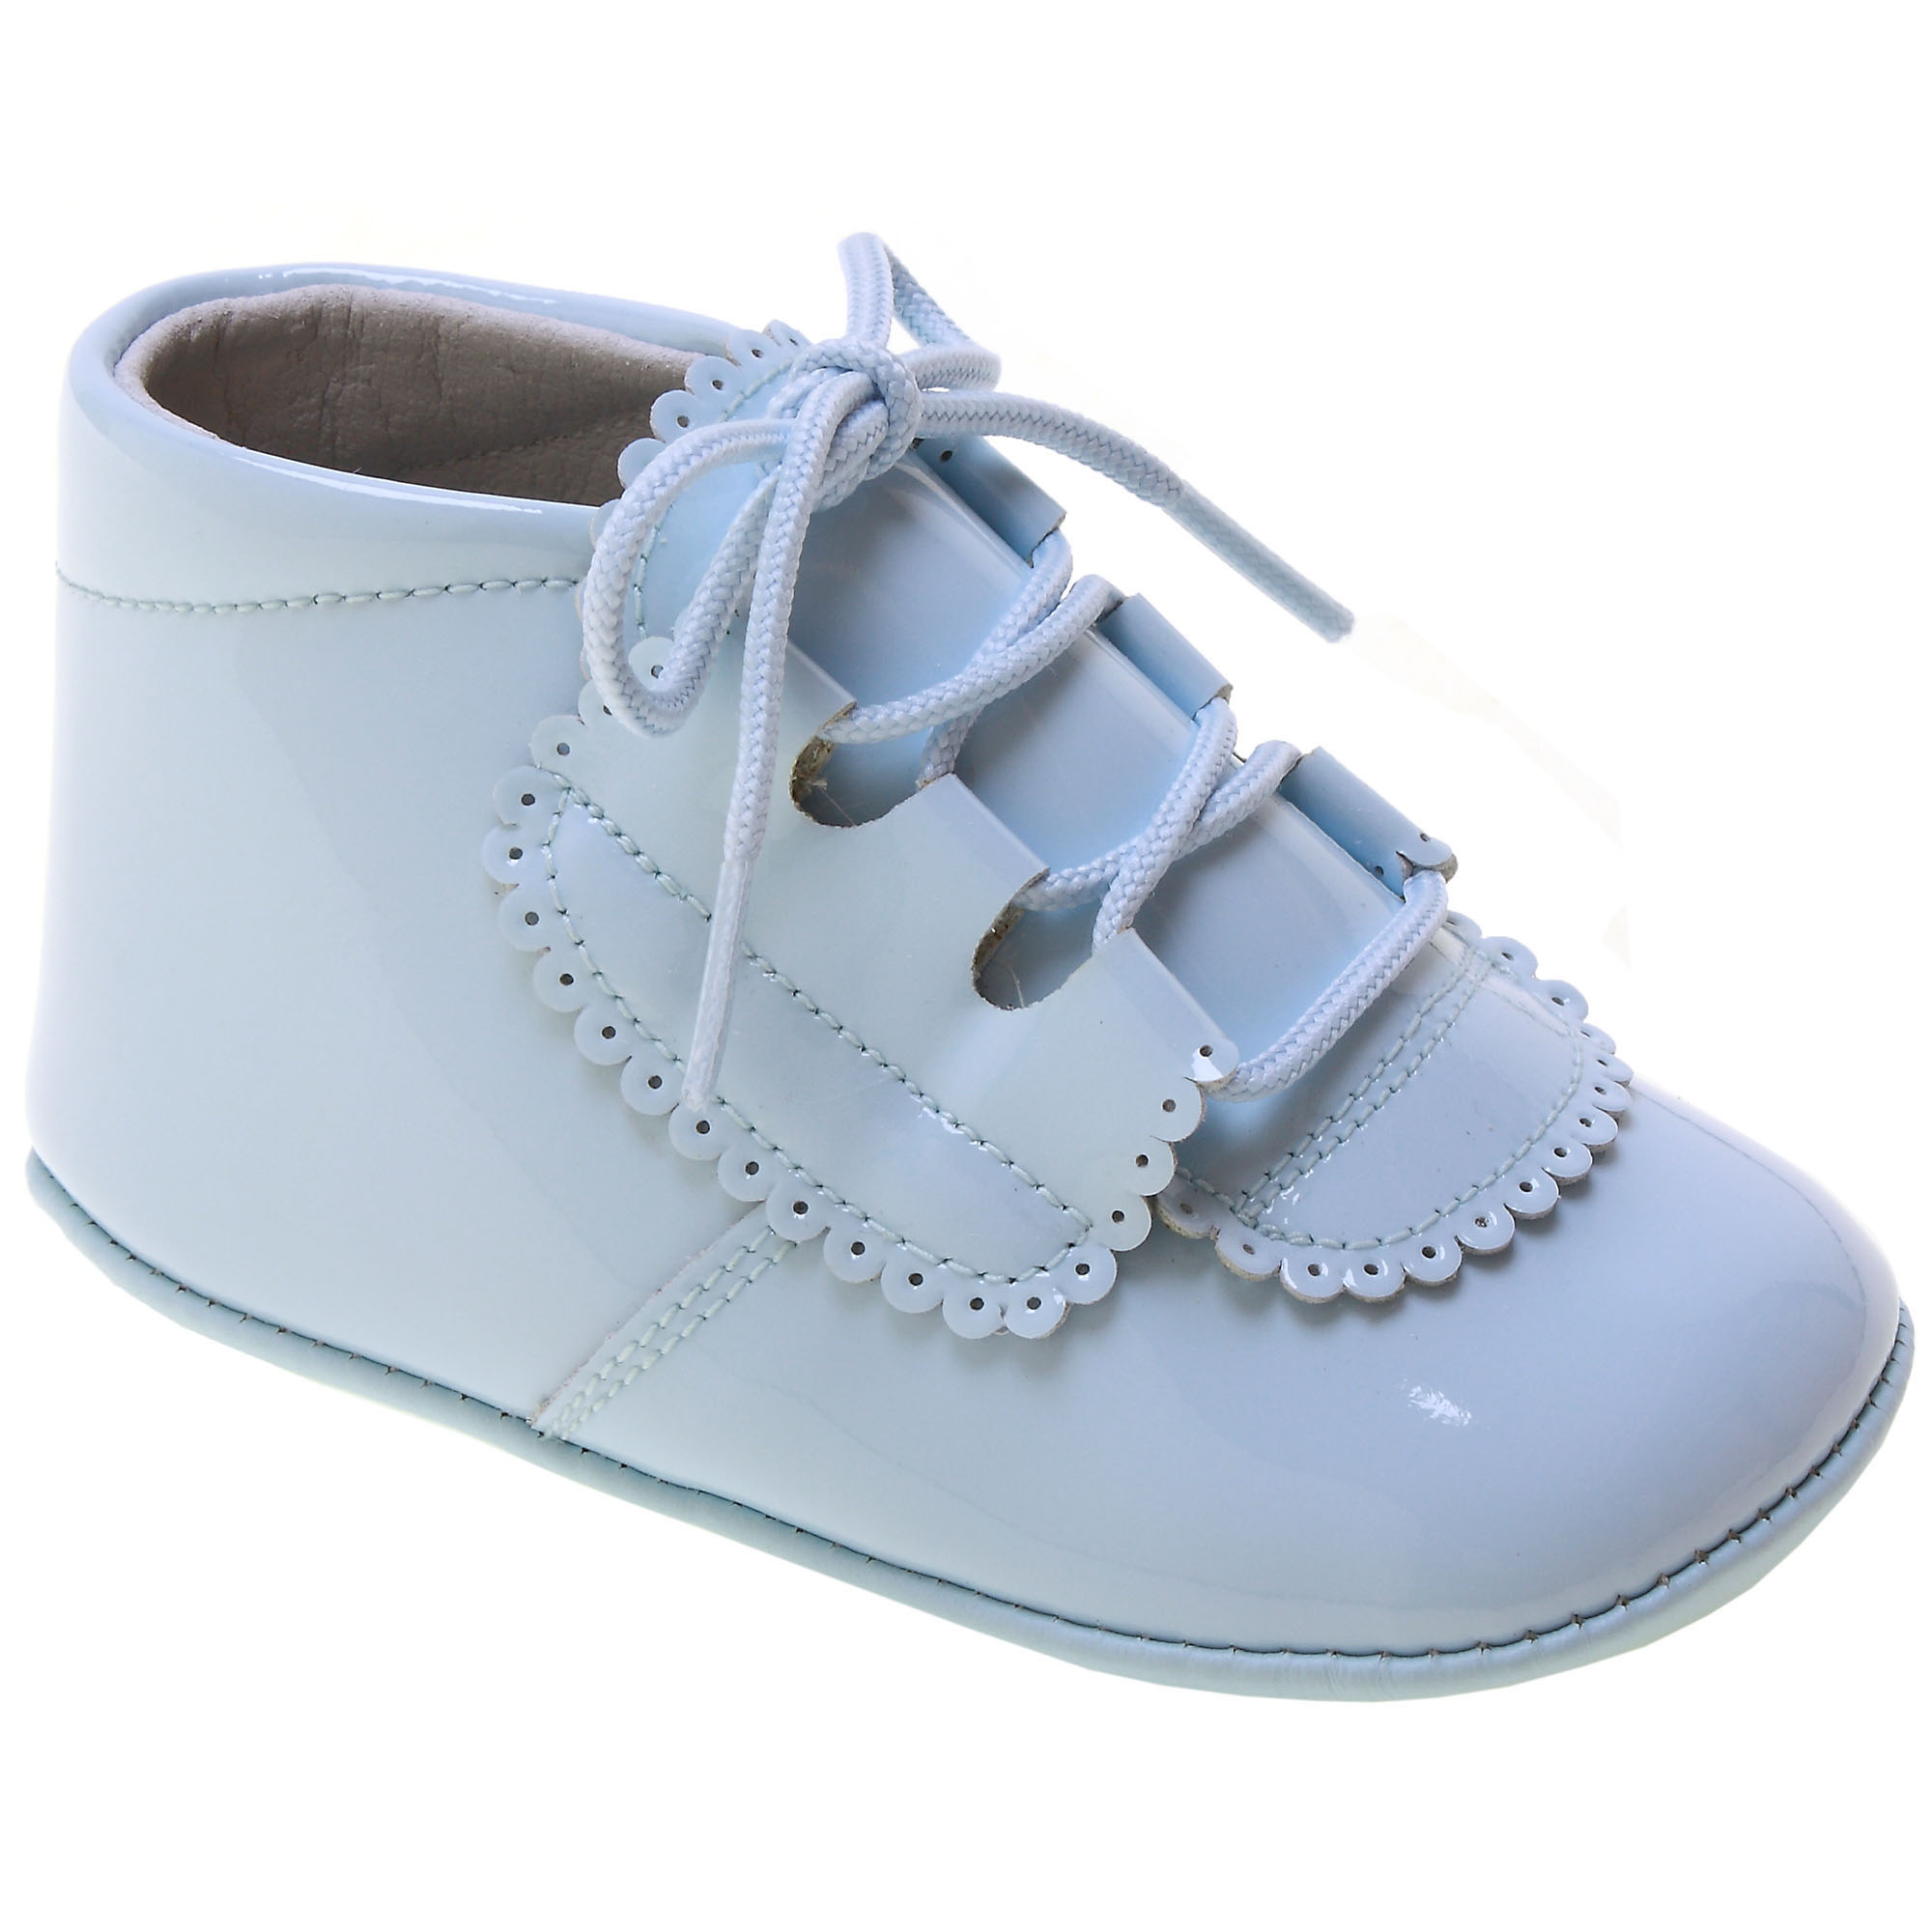 Infant Size  Shoes Uk